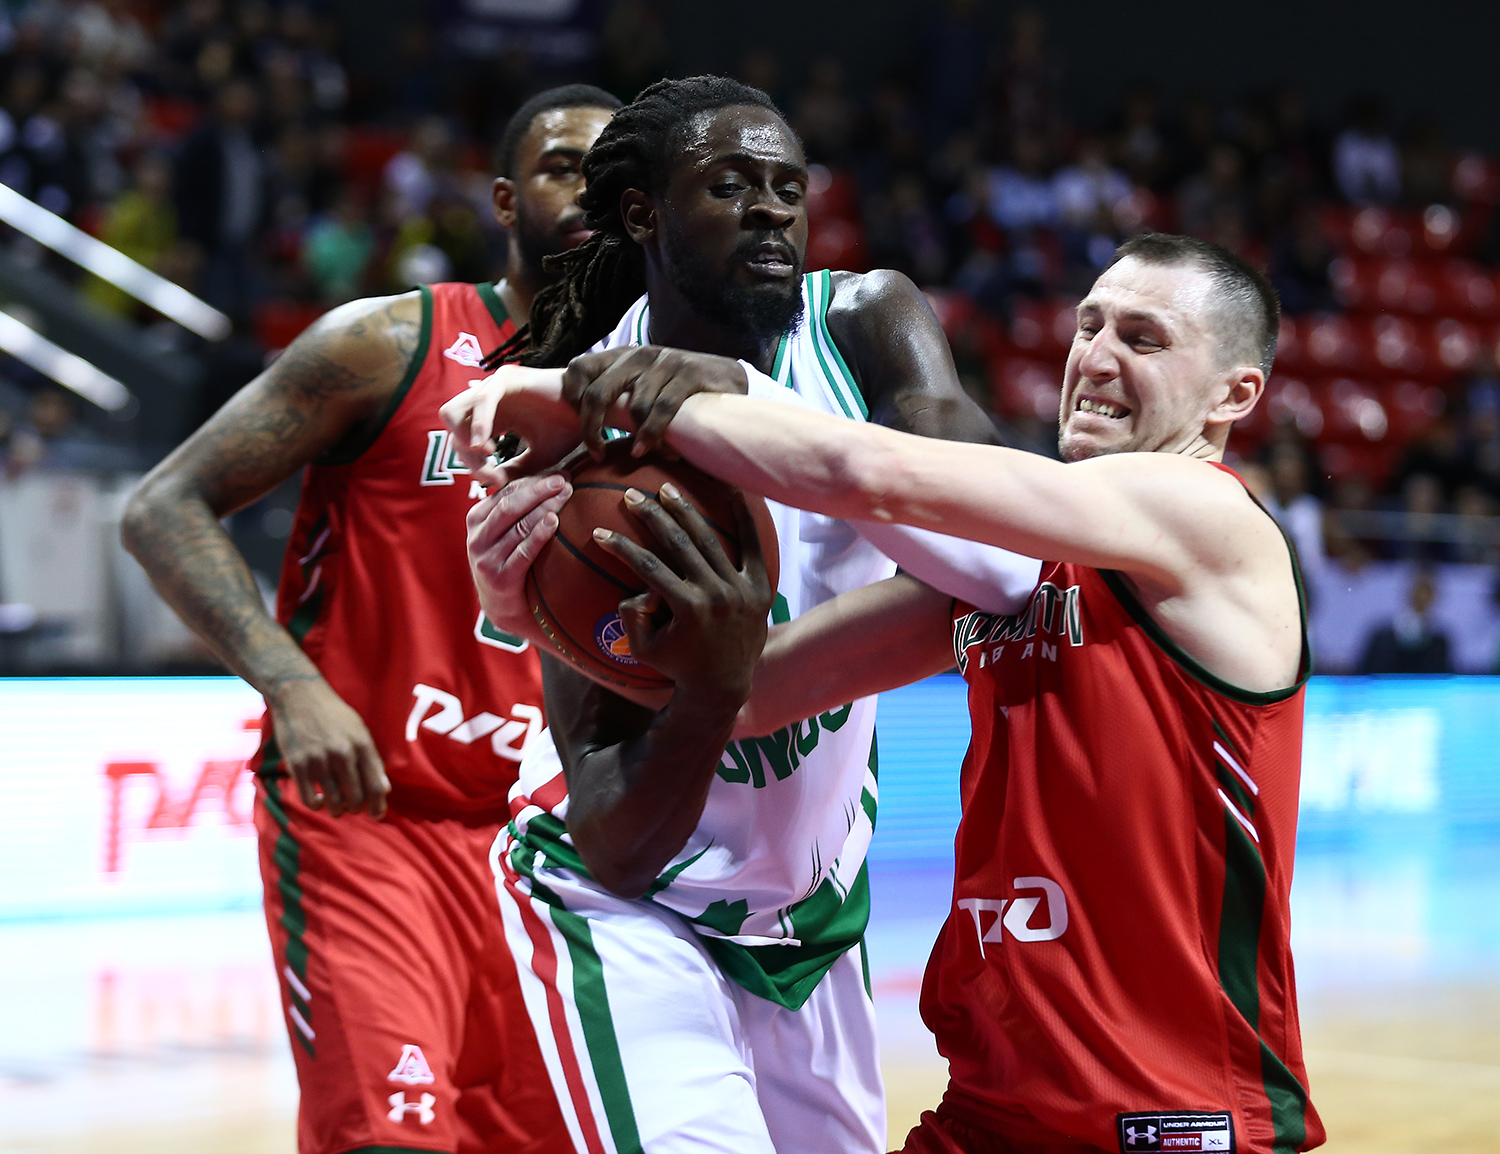 UNICS Erases 16-Point Deficit In Krasnodar To Stay In 2nd Place